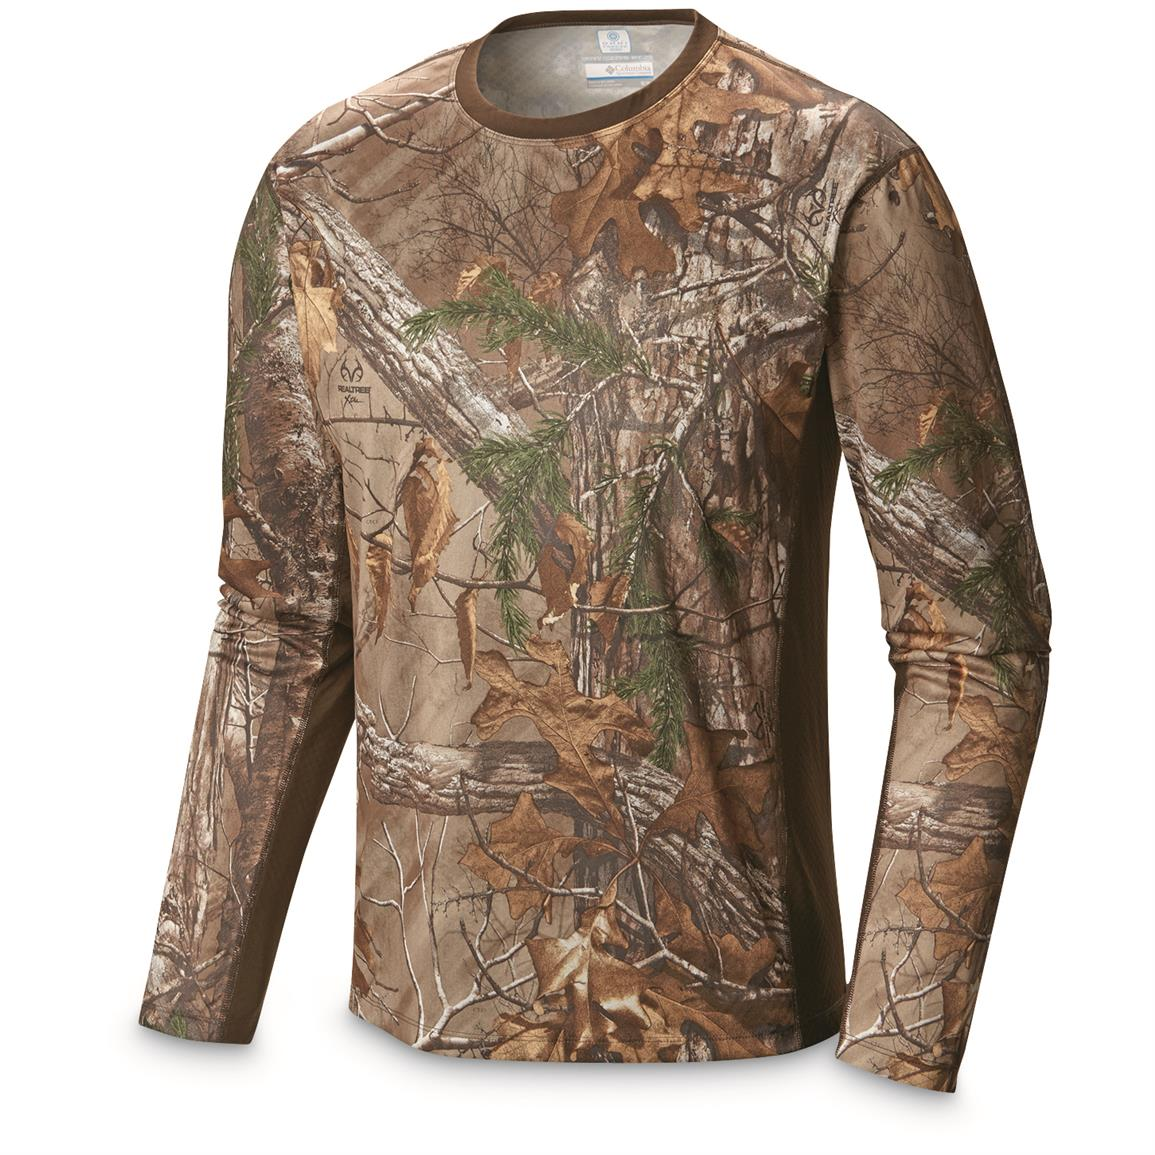 Columbia Men's Stealth Shot lll Zero Long Sleeve Shirt, Realtree Xtra